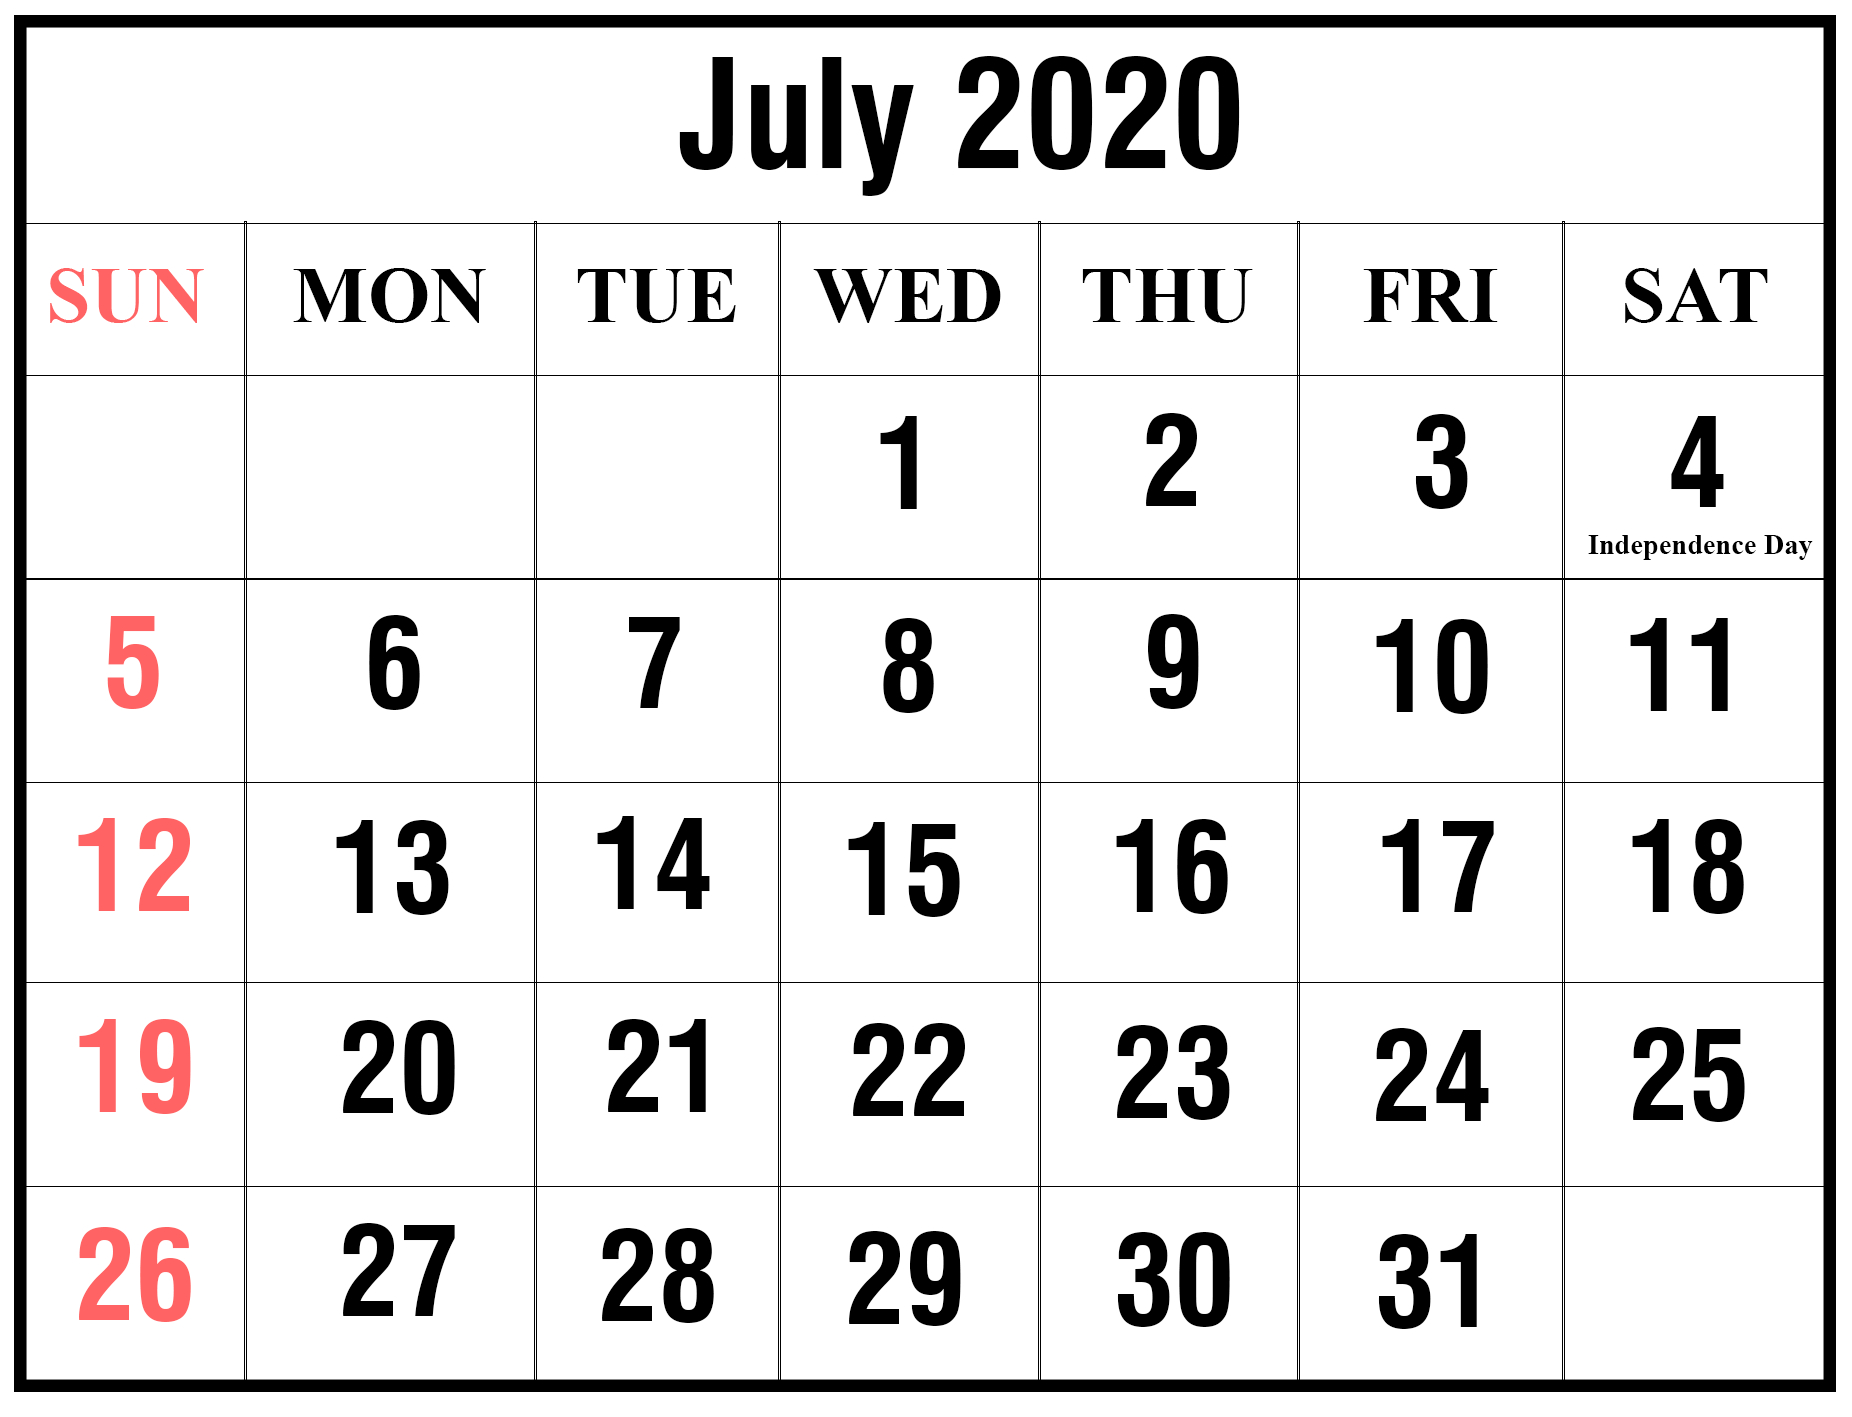 July 2020 Calendar With Holiday | Printable December with regard to 2020 Sri Lanka Calendar